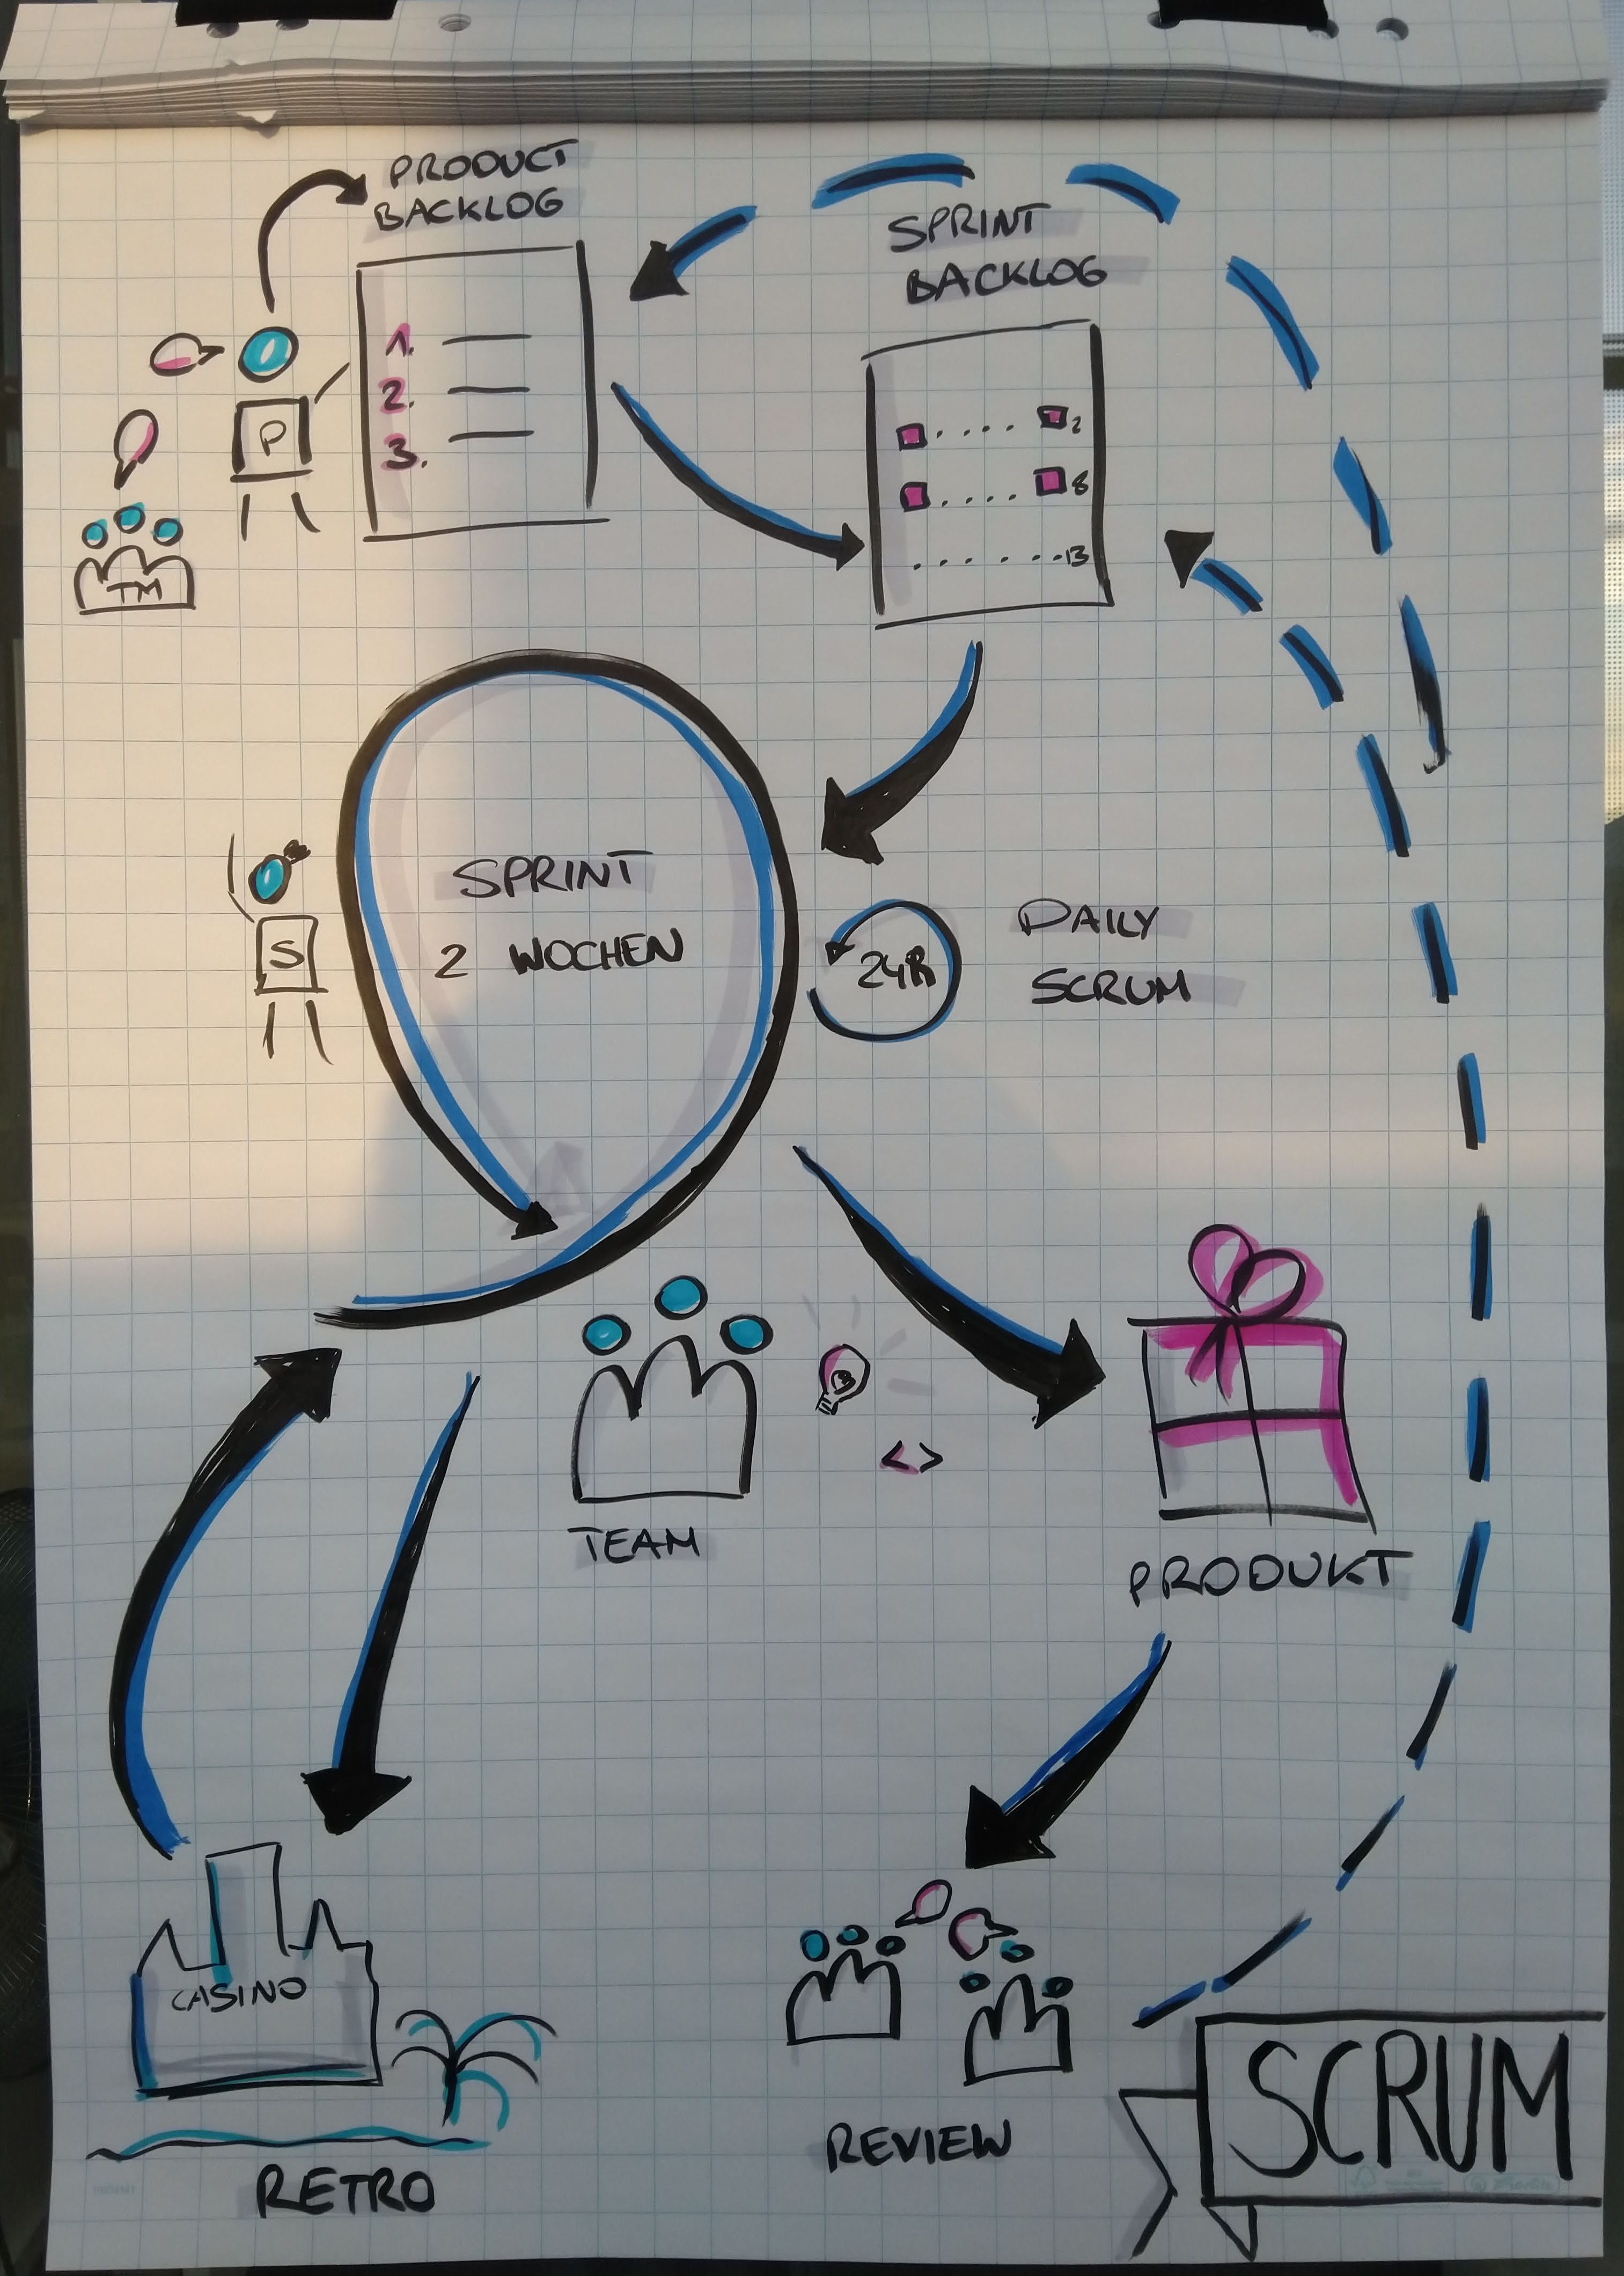 Visualisation of a Scrum process